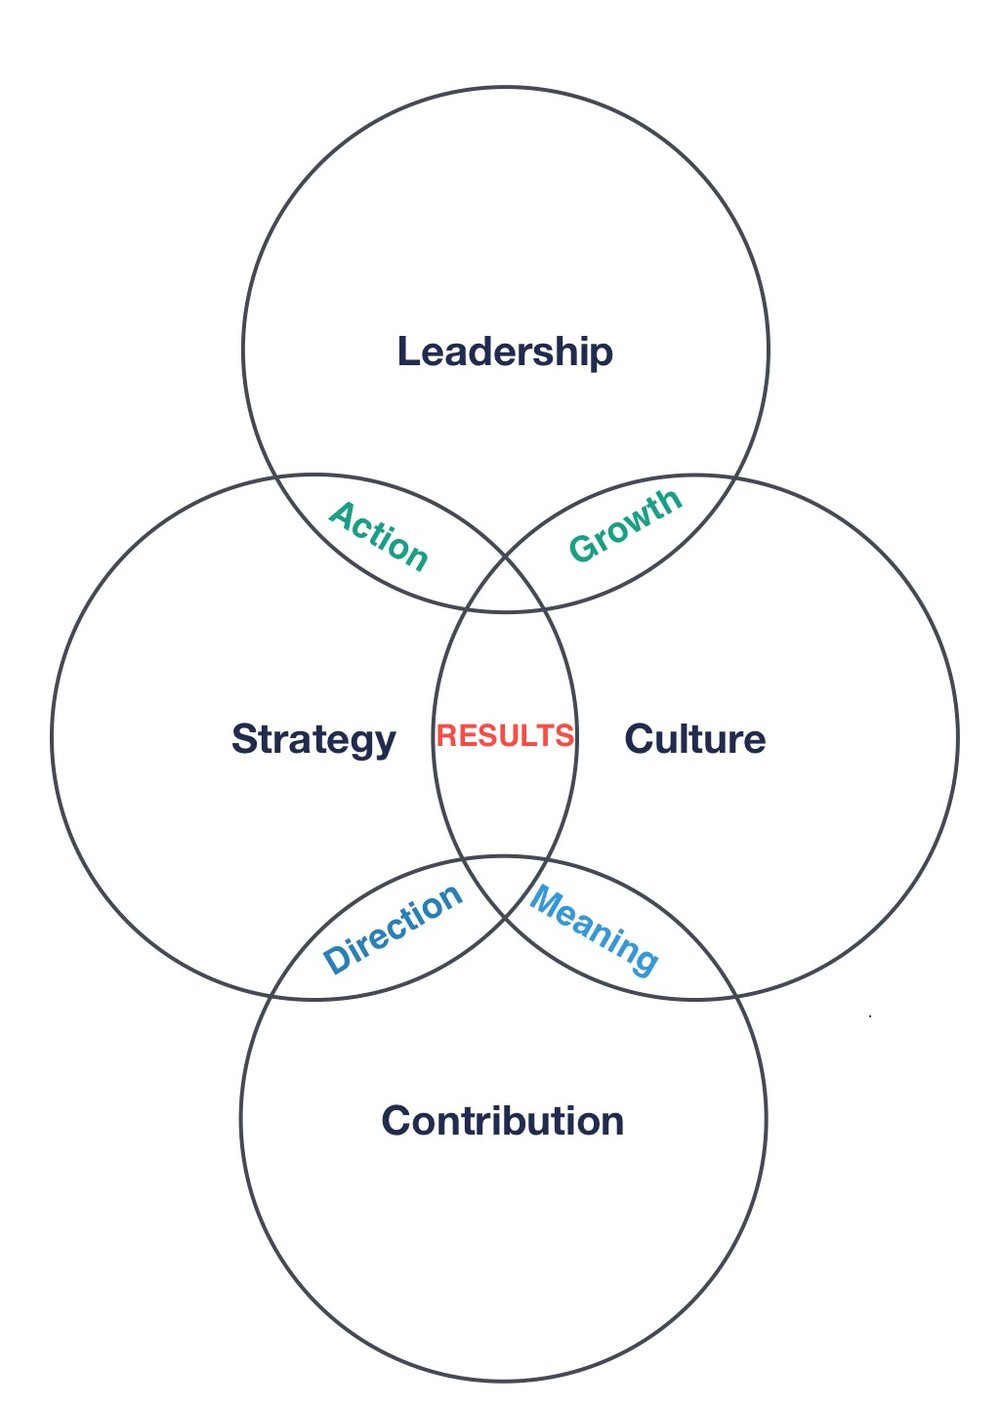 Business and professional resilience needs strong leadership - the head, sound strategy - the hands to do the work, robust culture - the heart, and a meaningful contribution - the soul of an organisation. Attention to all four areas will drive you out of survival mode.